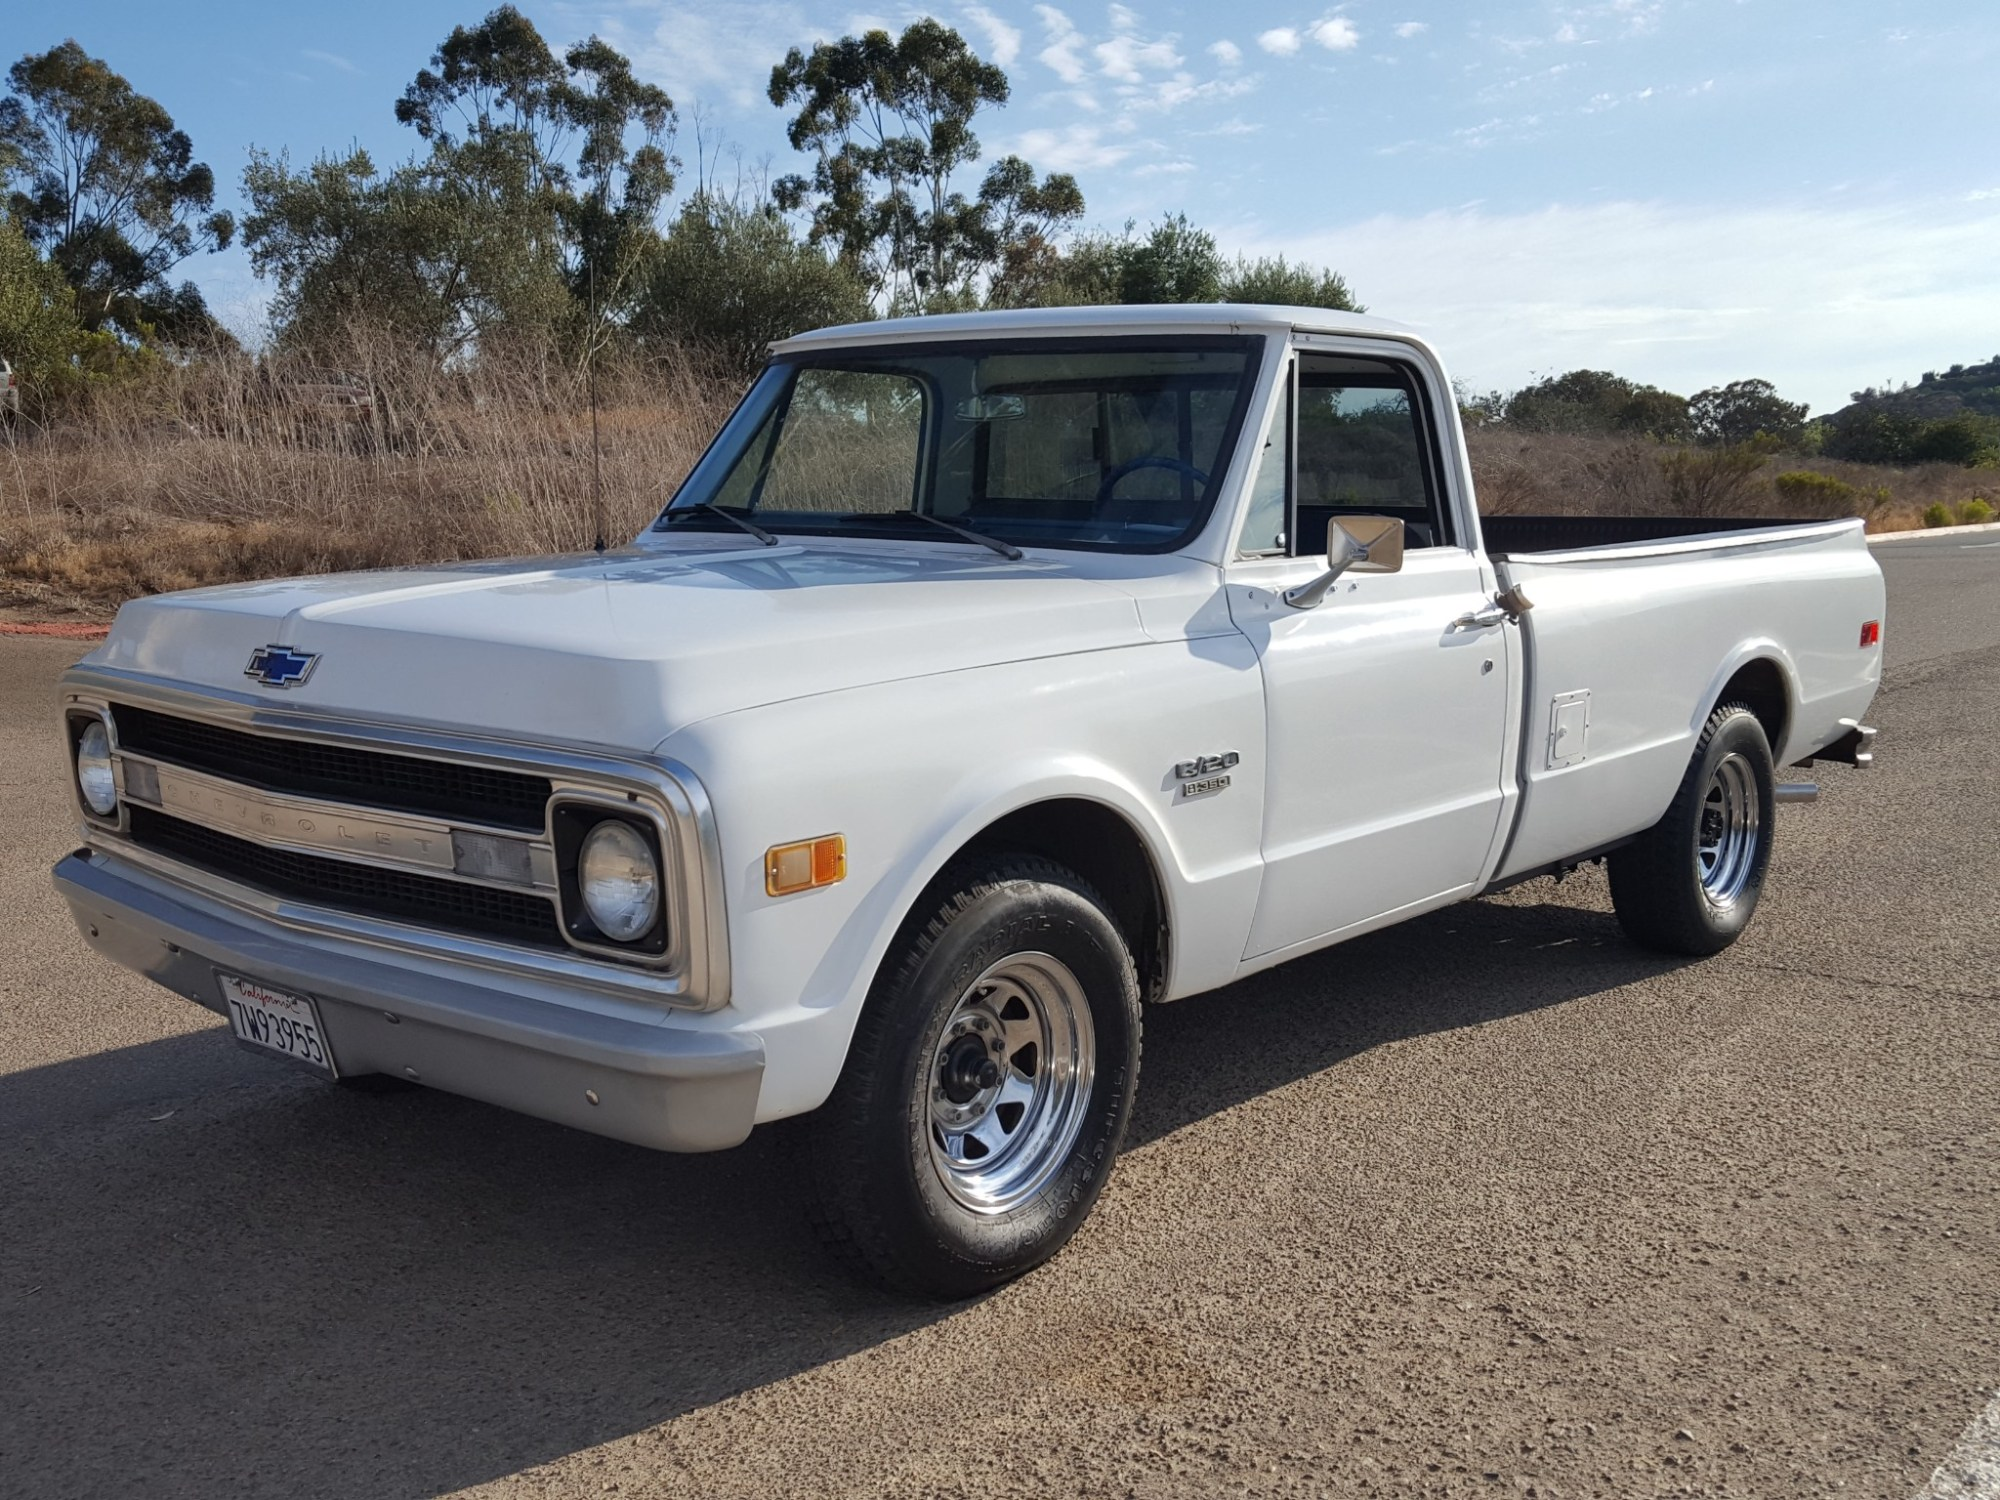 hight resolution of 1970 chevrolet c20 4 speed pickup for sale on bat auctions sold for 11 500 on august 13 2018 lot 11 572 bring a trailer